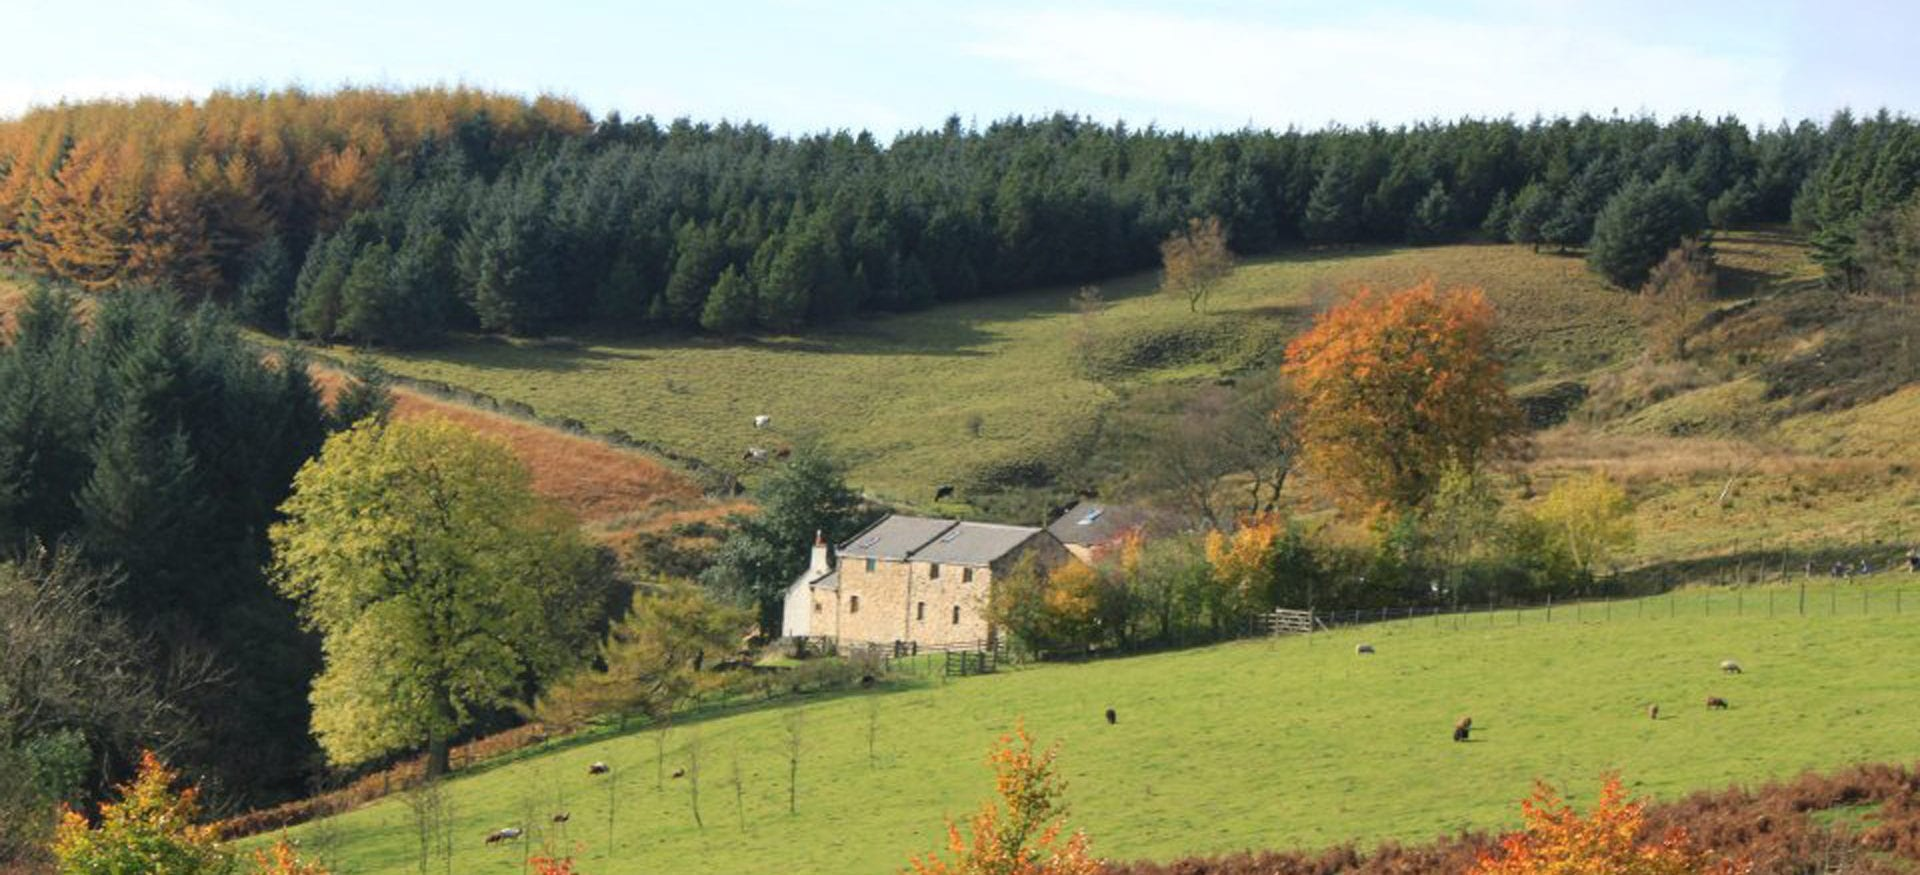 Lockerbrook Farm Outdoor Centre and Hostel, Snake Pass